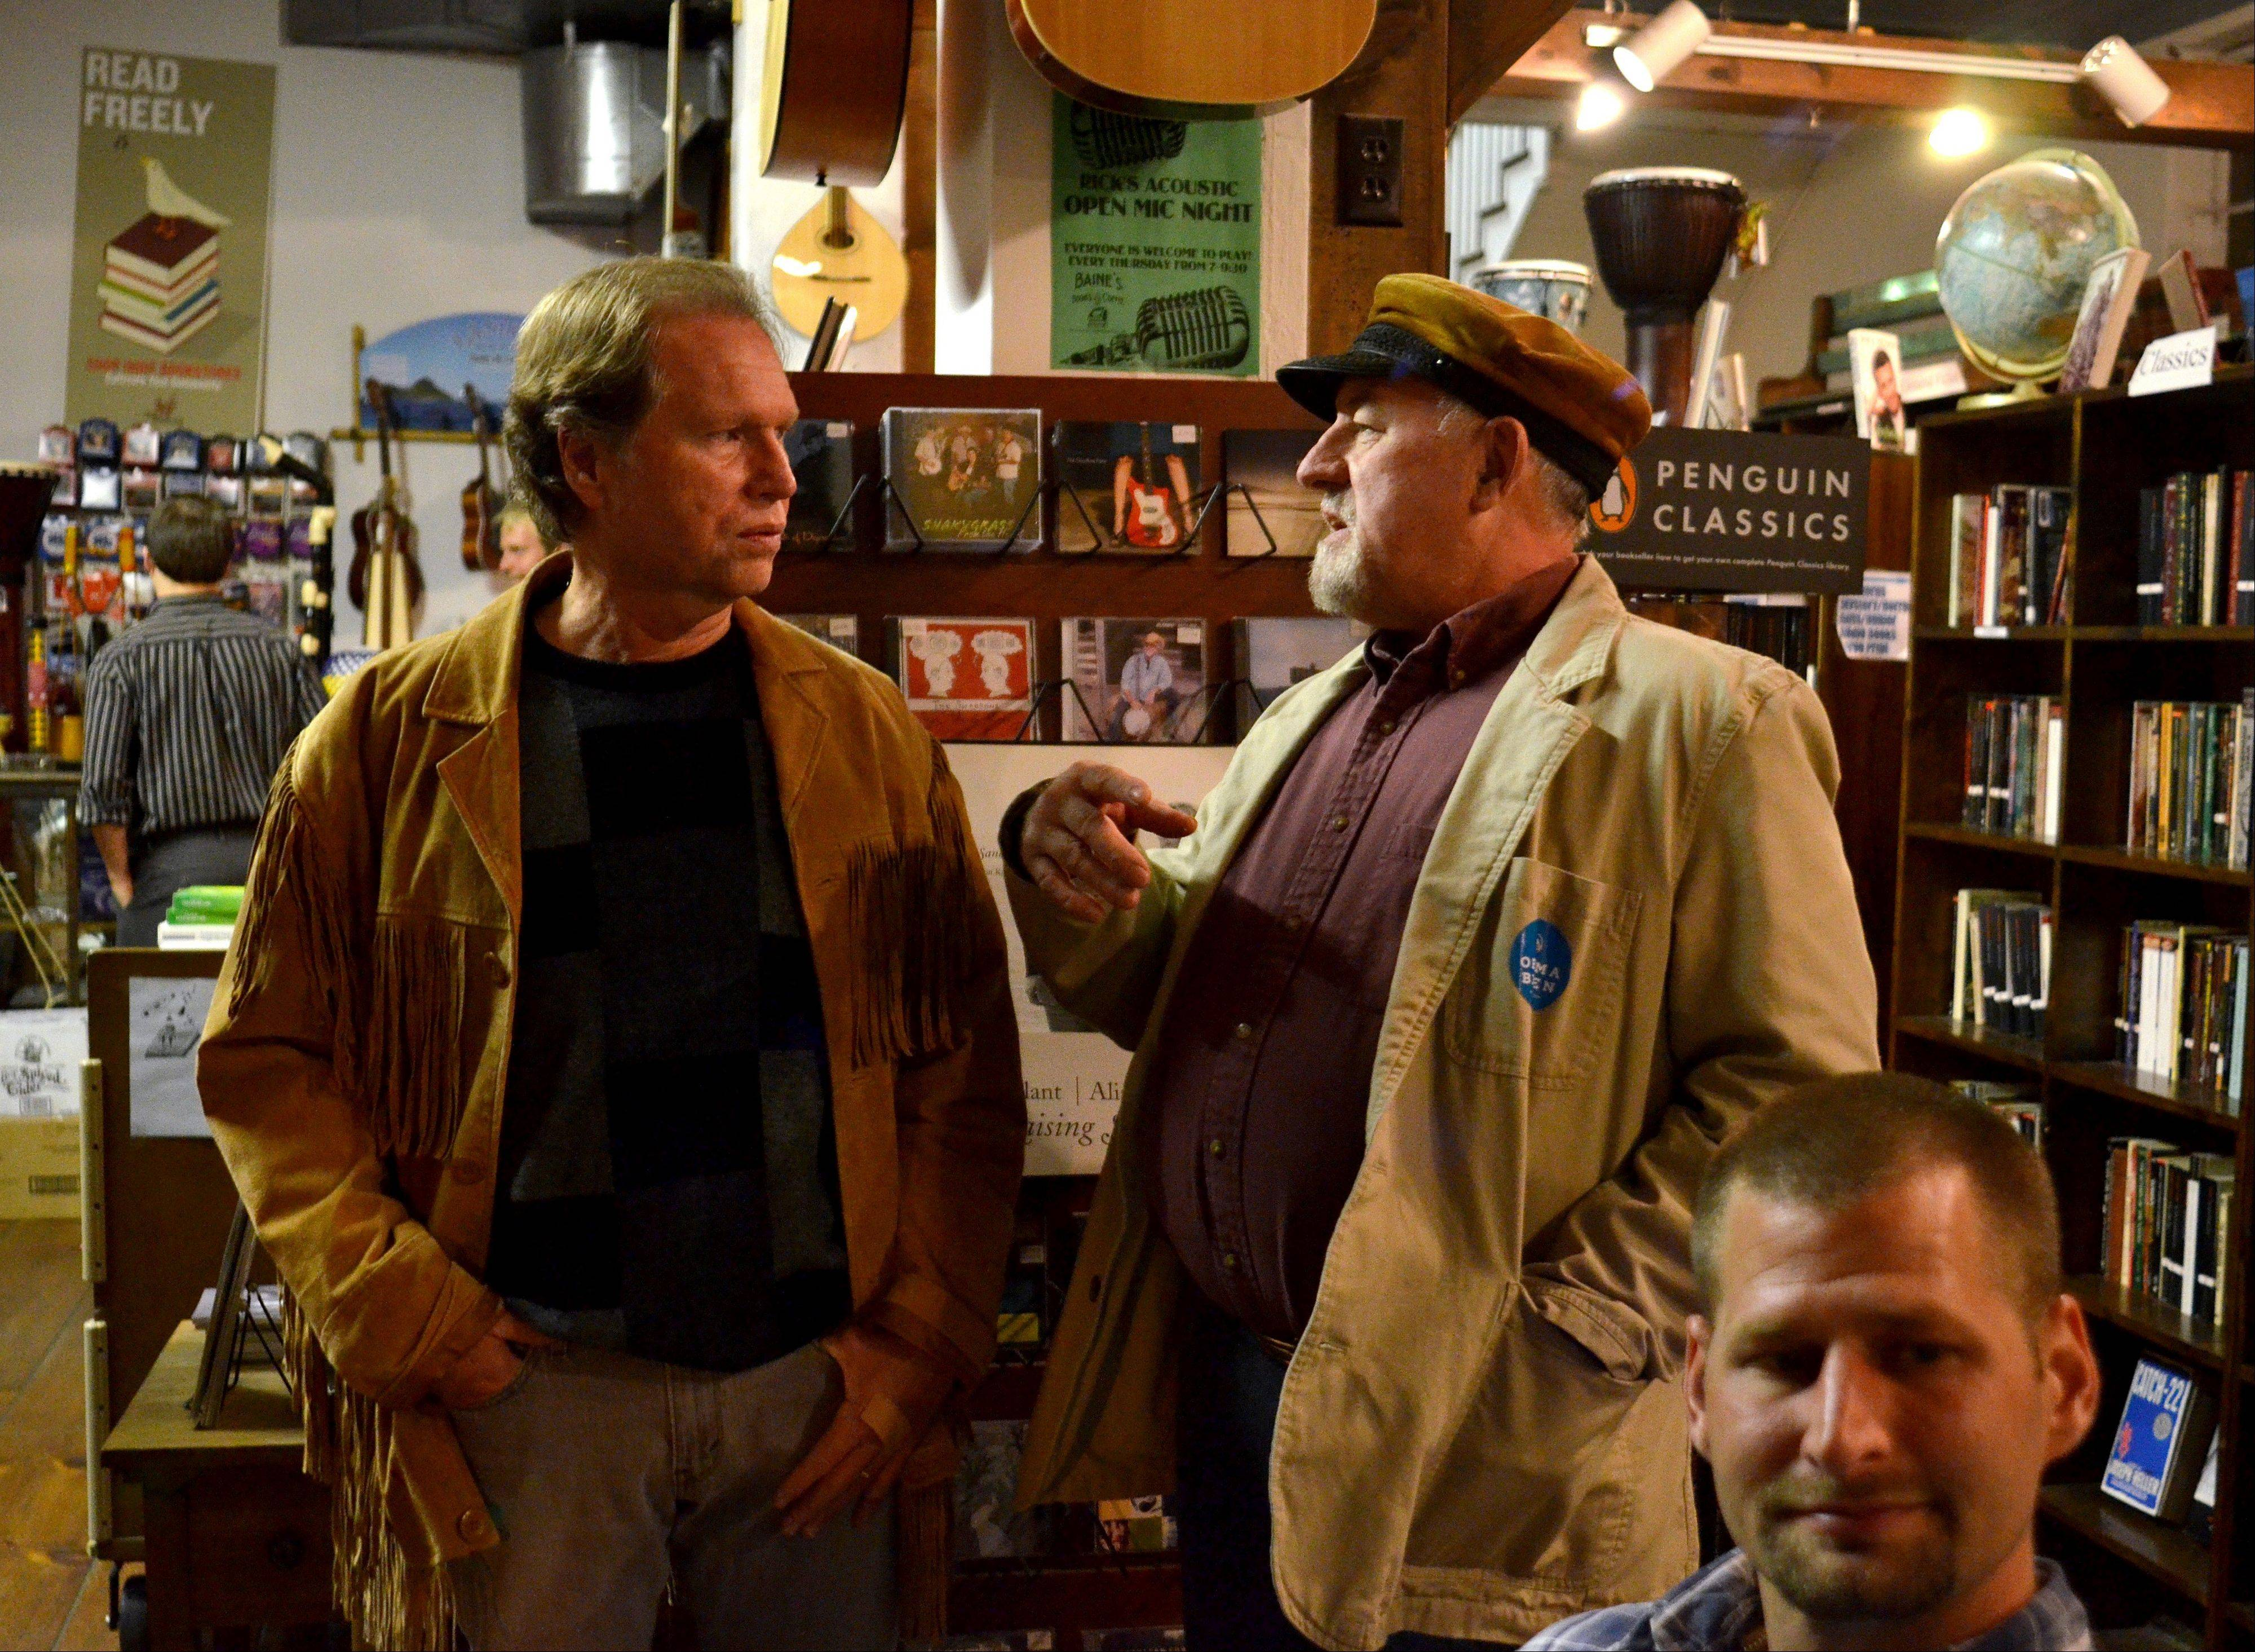 Jim Elder, center, talks with a friend during open mic night at Baine's Books in Appomattox, Va.